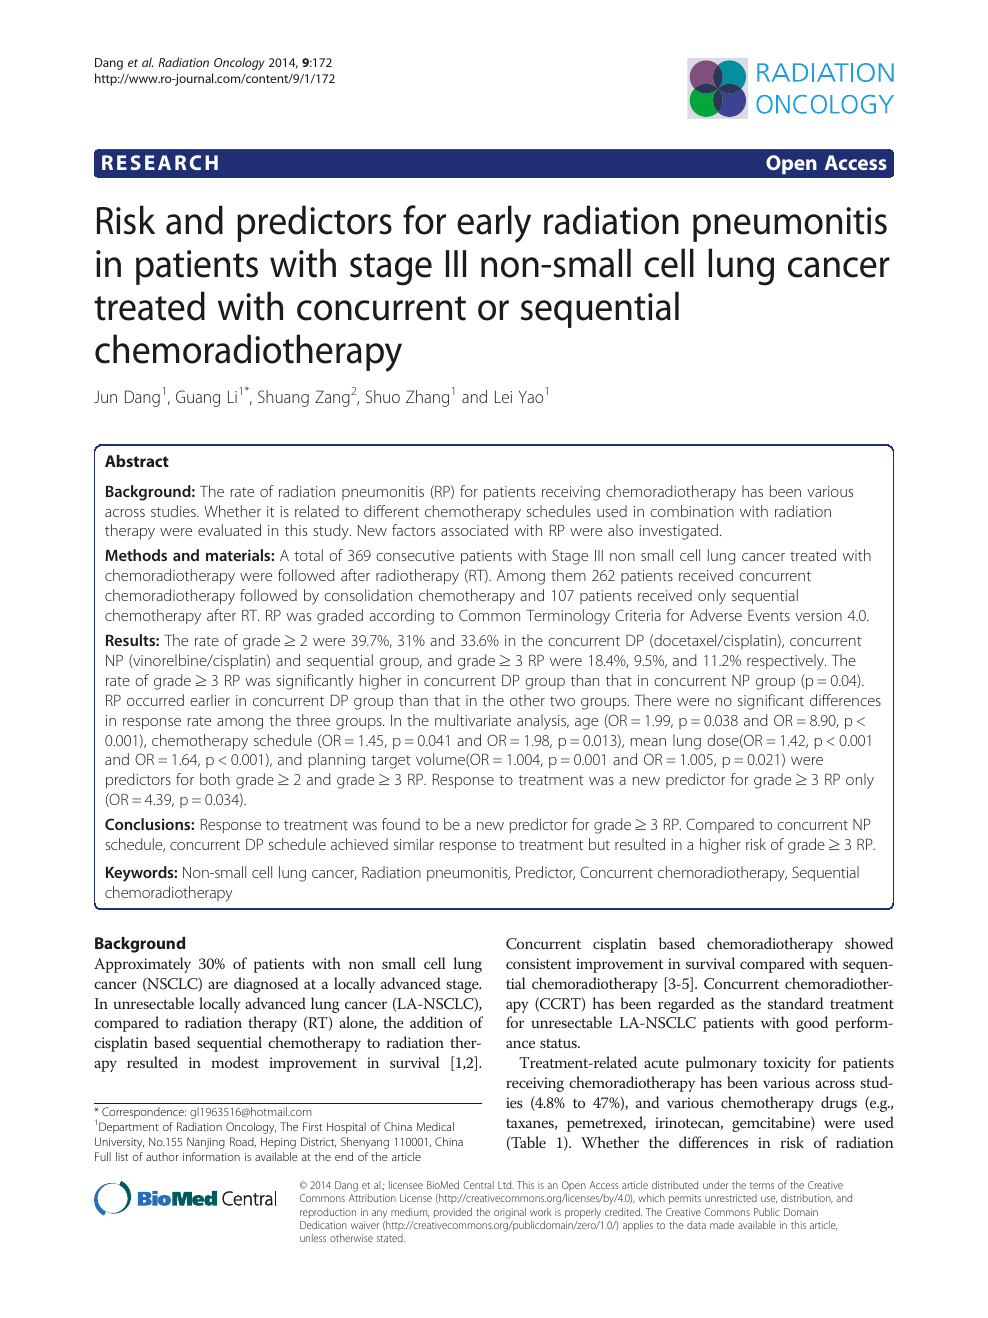 Risk and predictors for early radiation pneumonitis in